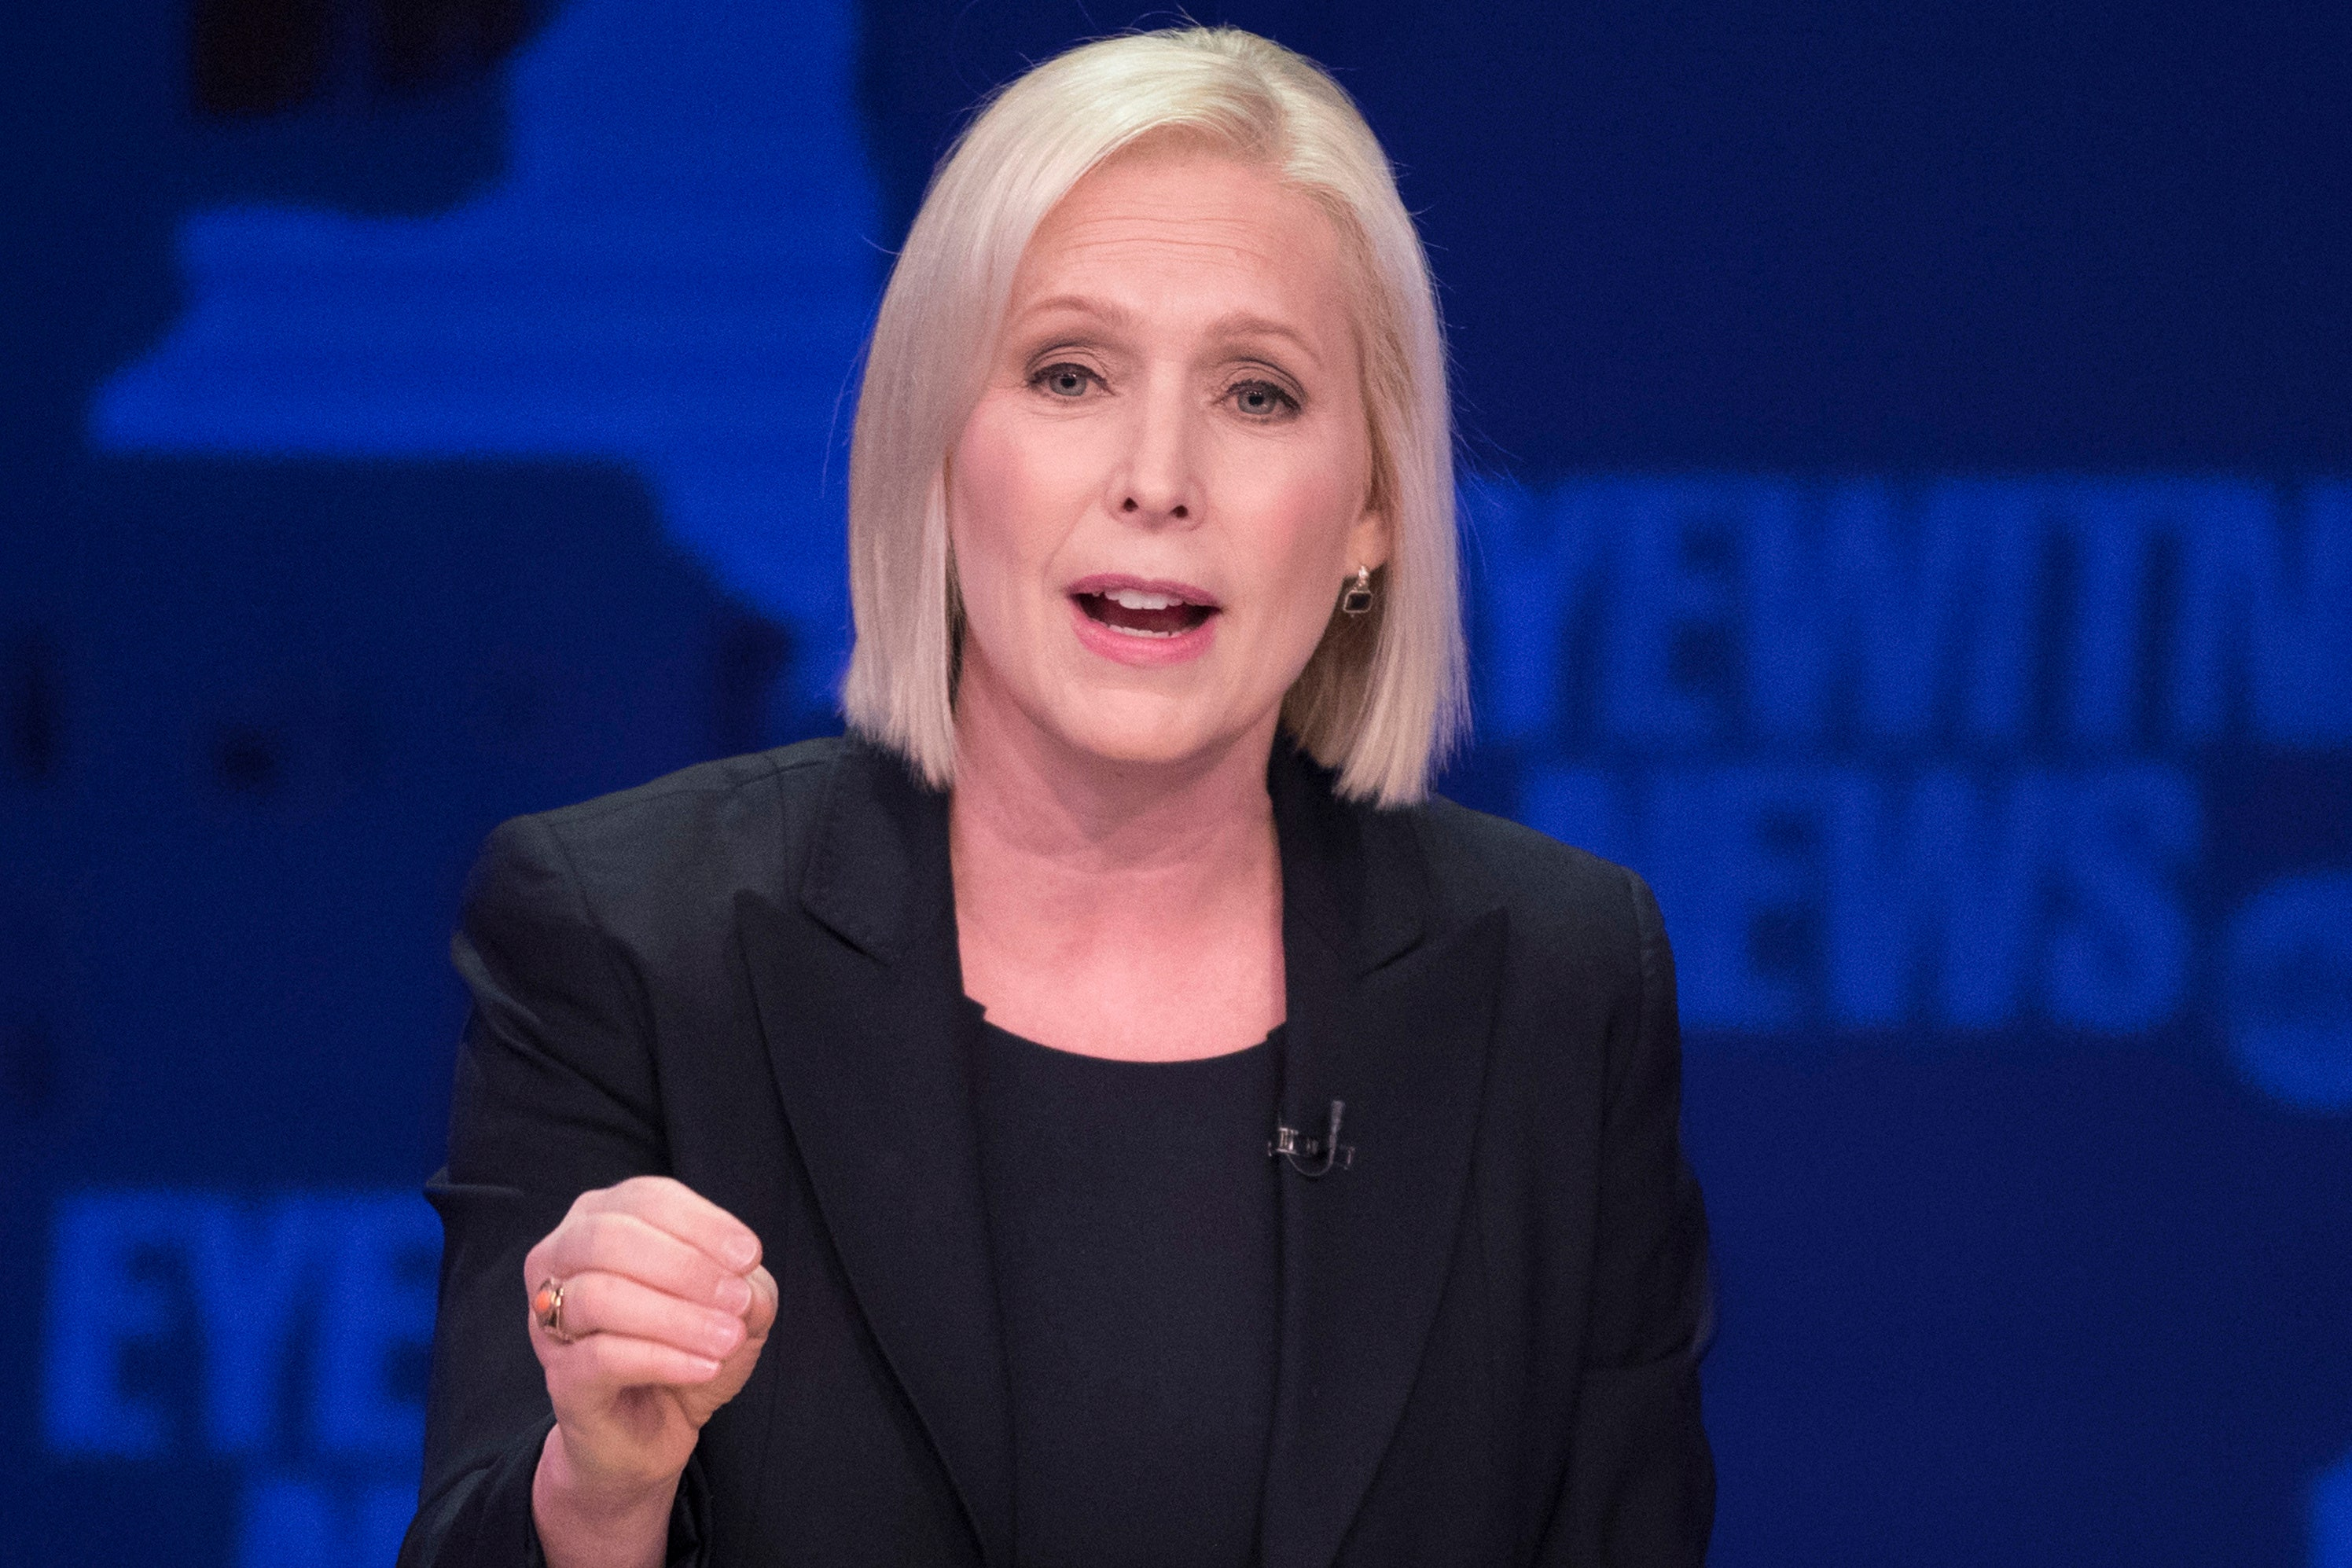 Who Is Kirsten Gilli Nd 5 Things To Know About The New York Senator And 2020 Candidate